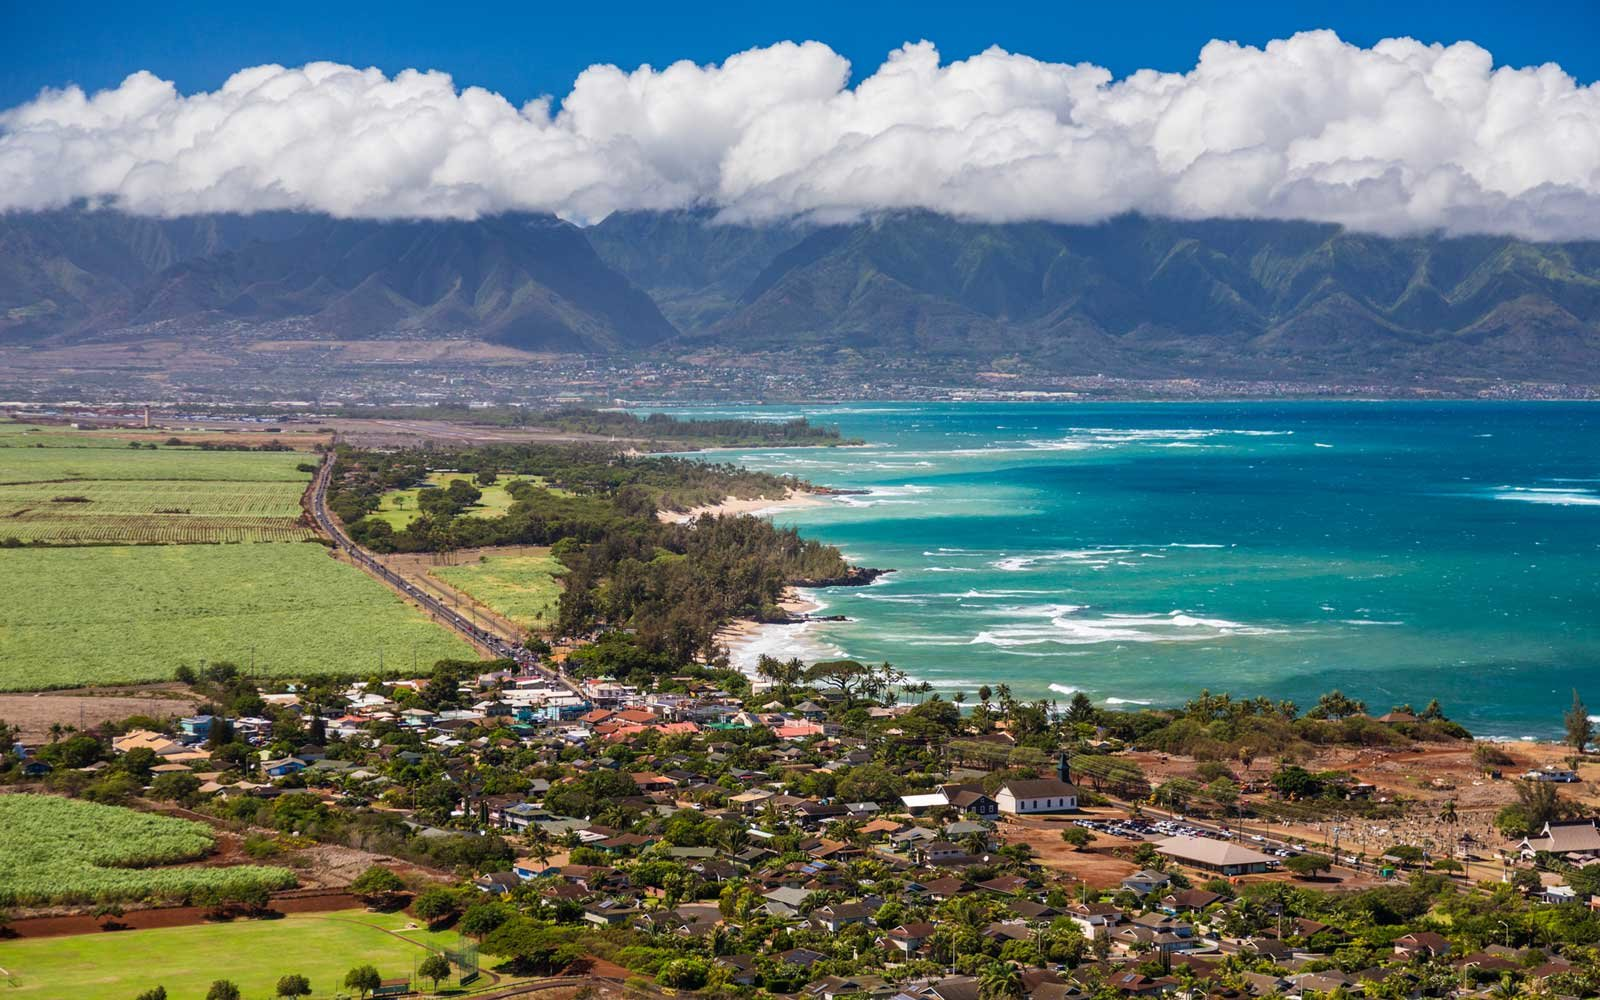 View from Paia toward Kahului